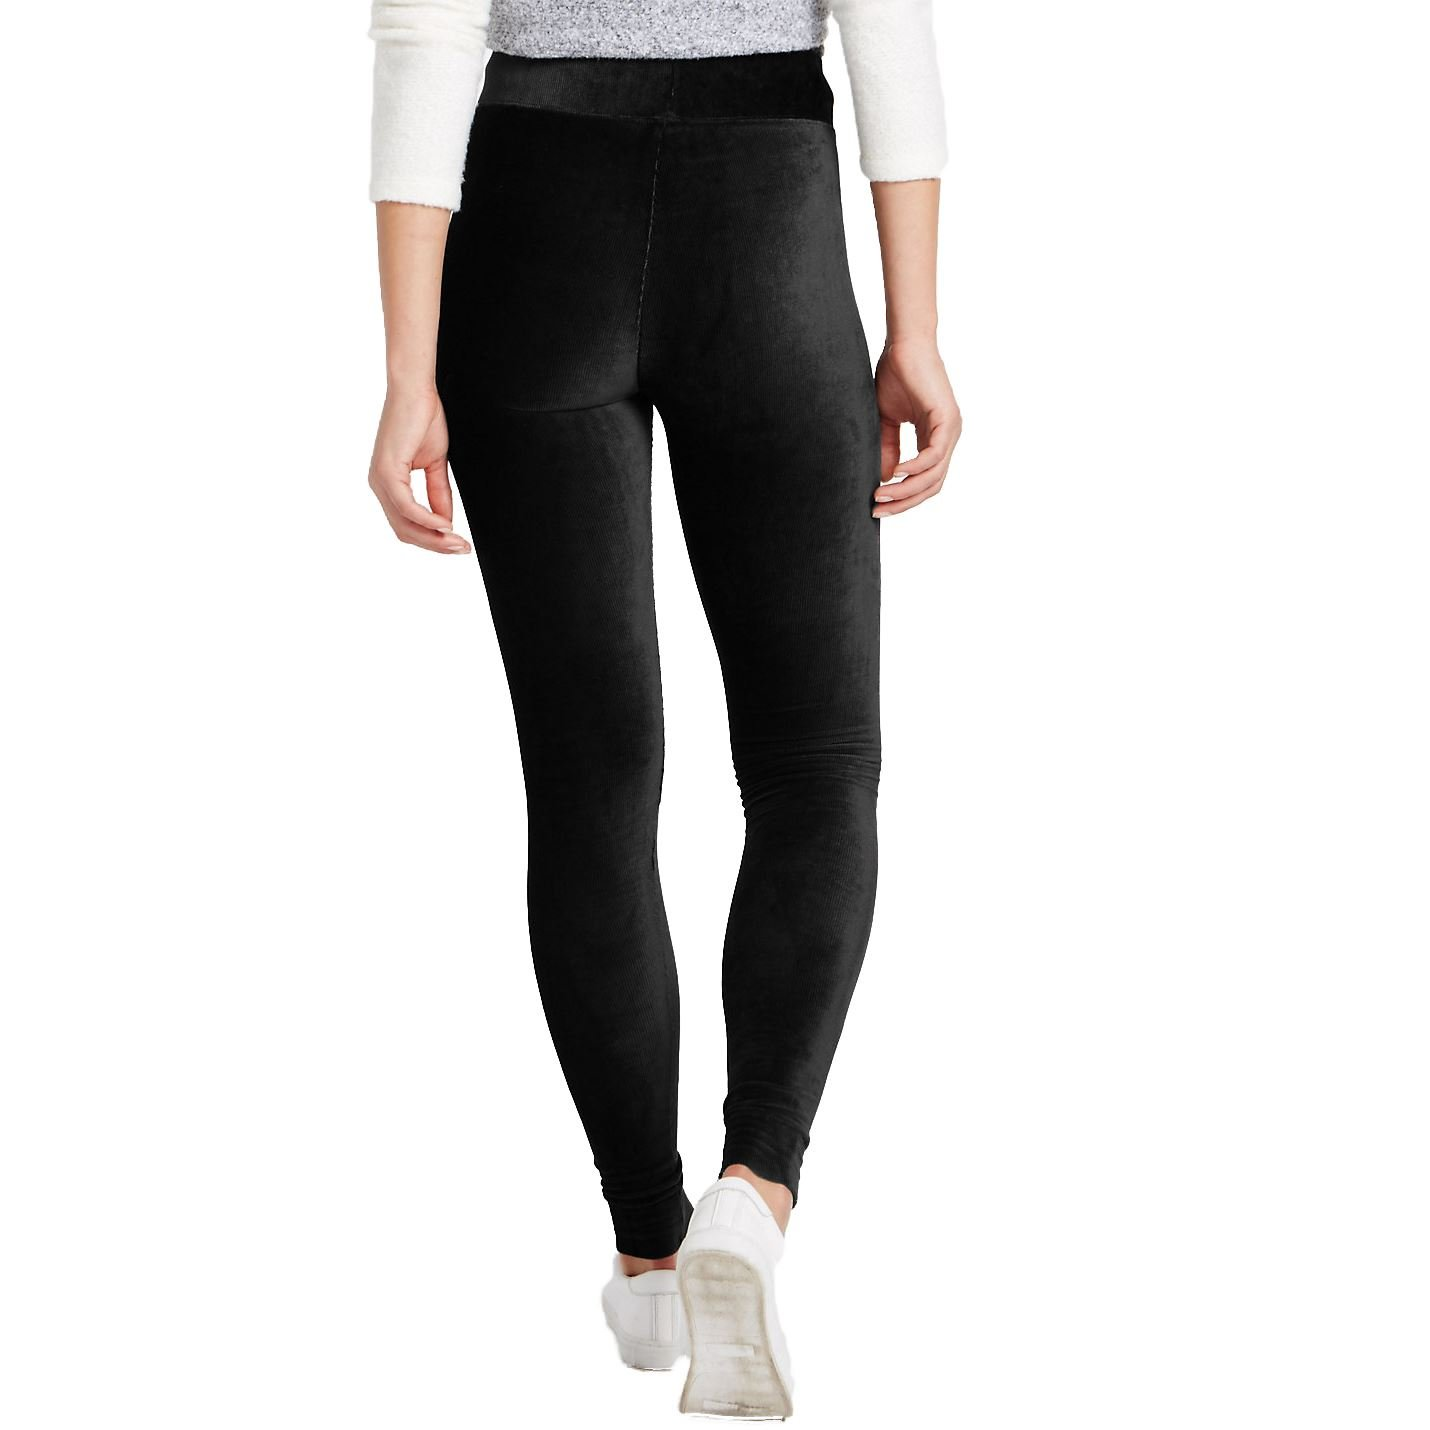 Marks And Spencer Collection Slim Fit Cord Leggings 4 Colour Hanger Marksspencer Choices Clothing